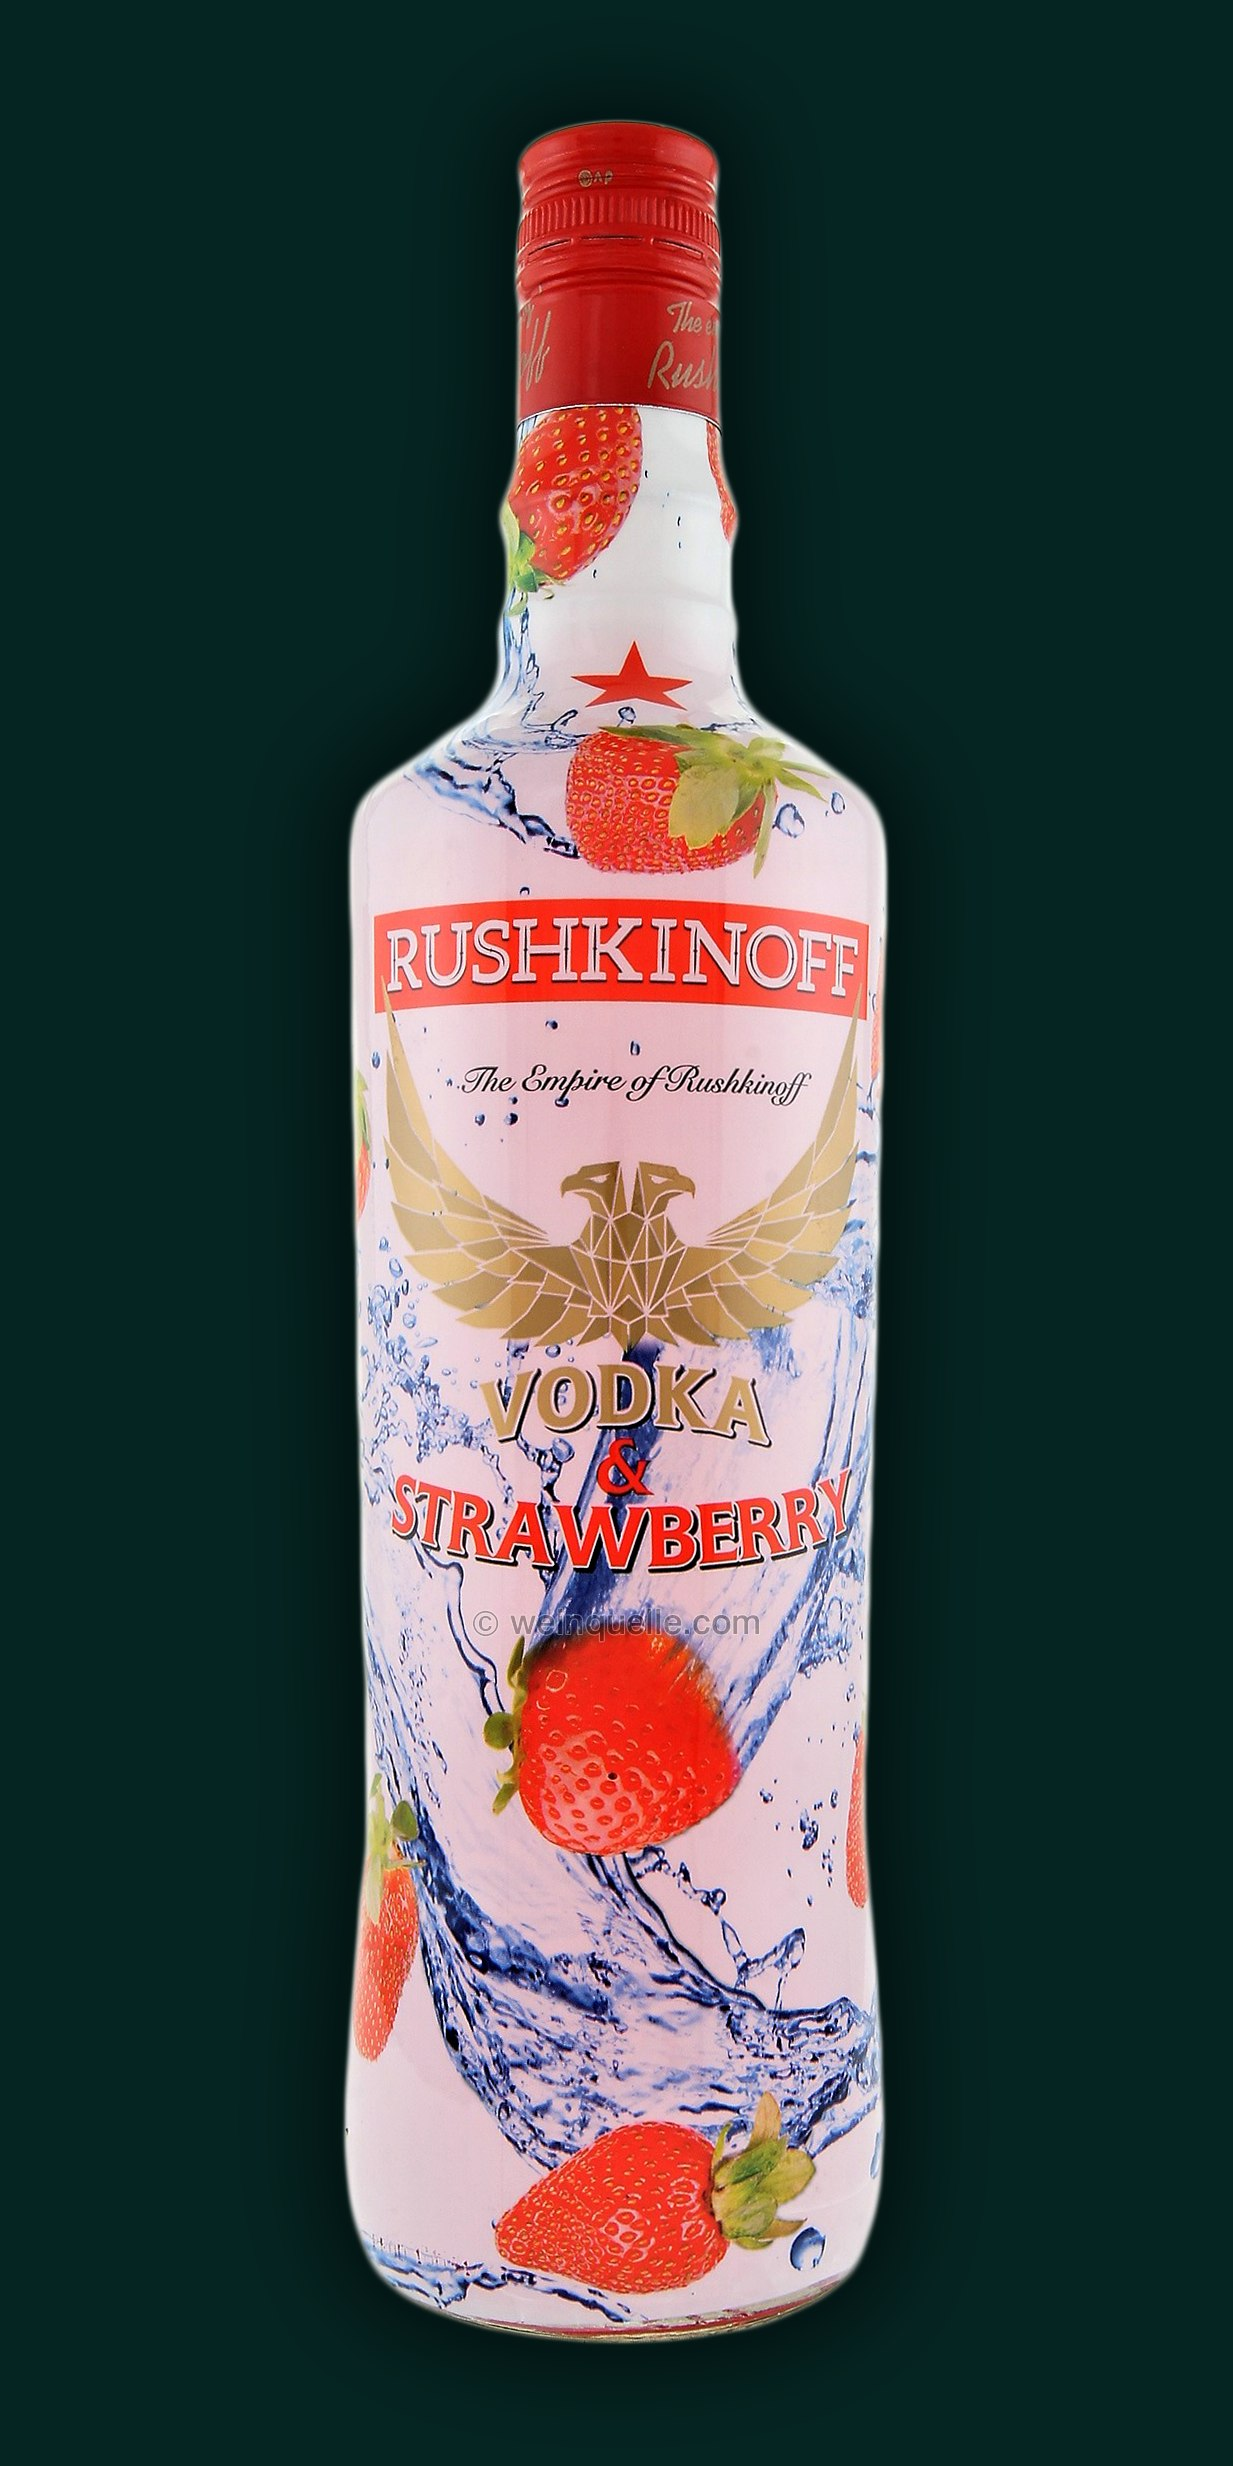 rushkinoff vodka strawberry 1 0 liter 10 95. Black Bedroom Furniture Sets. Home Design Ideas